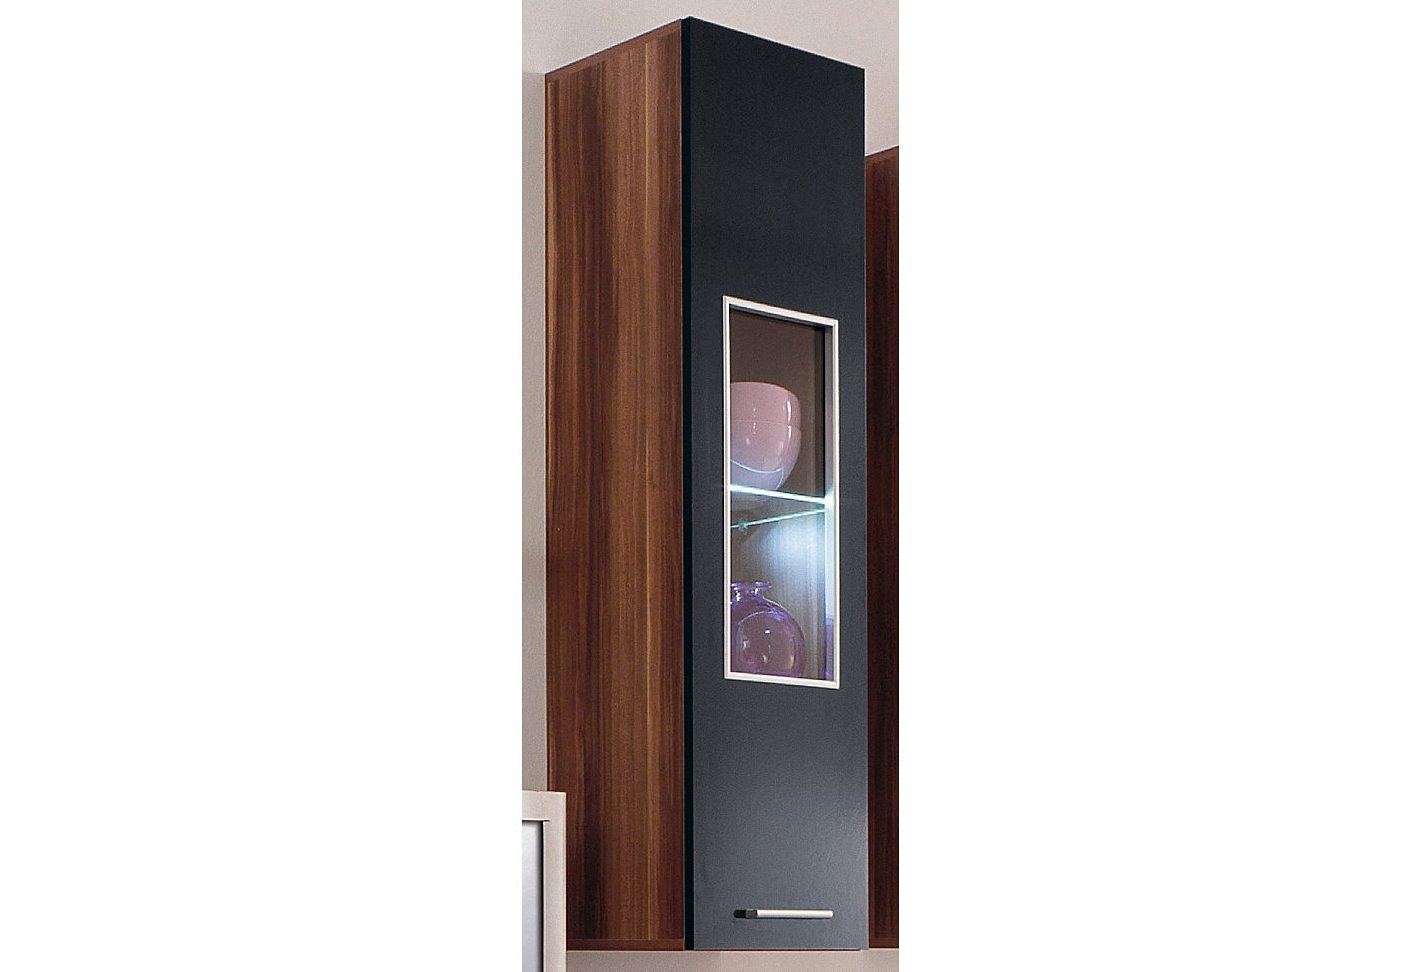 led verlichting voor glasplateau online bij otto. Black Bedroom Furniture Sets. Home Design Ideas